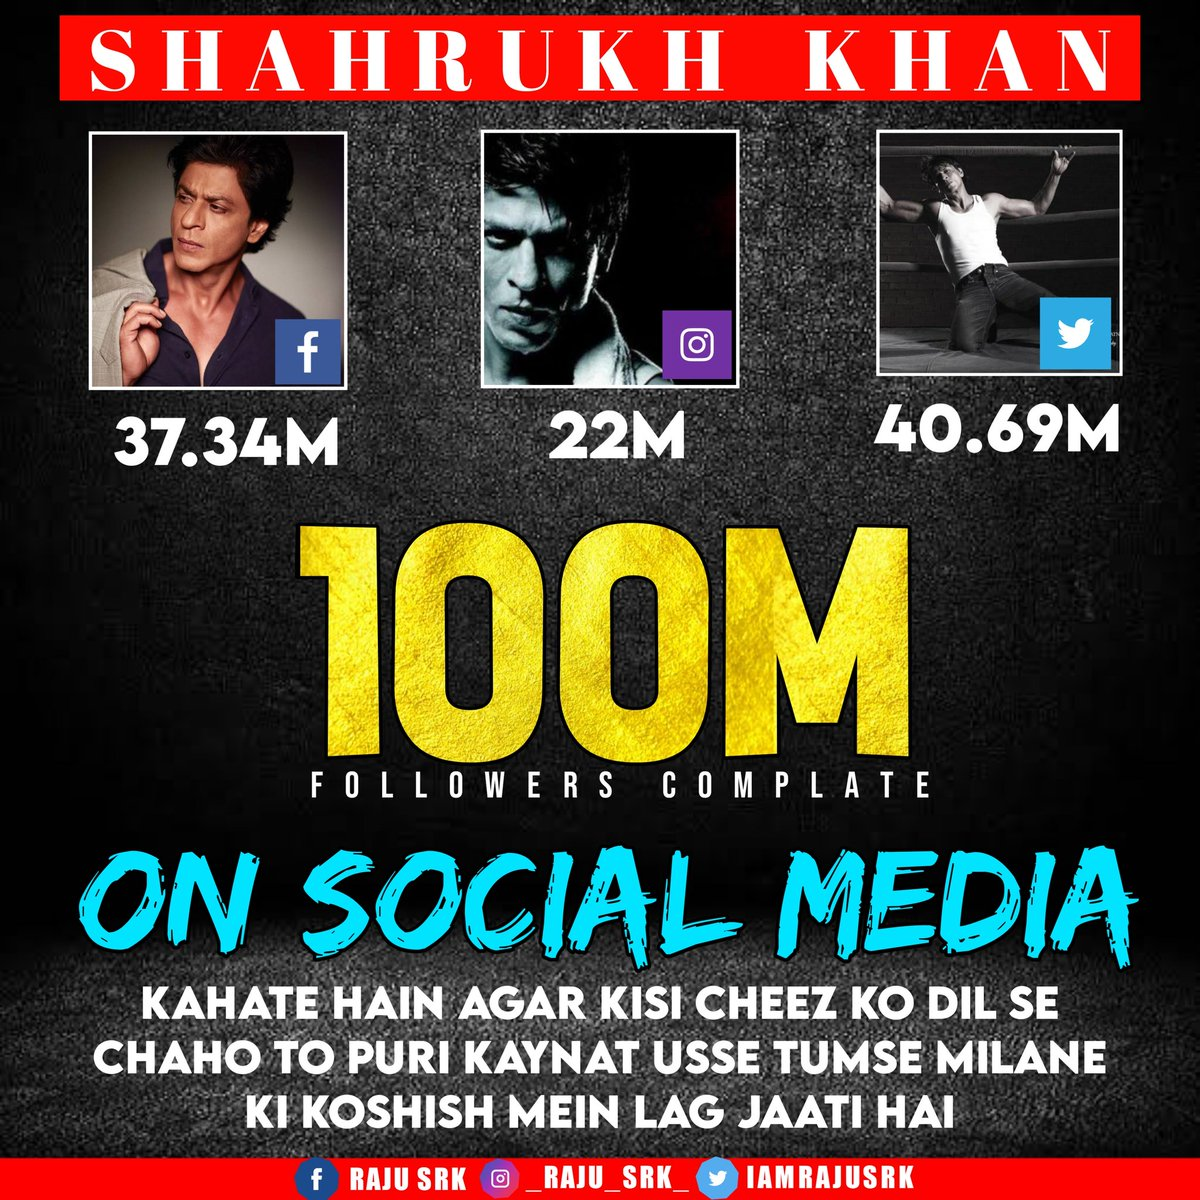 Congratulations @iamsrk for completing 100M followers across social media platforms! ❤️ #SRK100Million